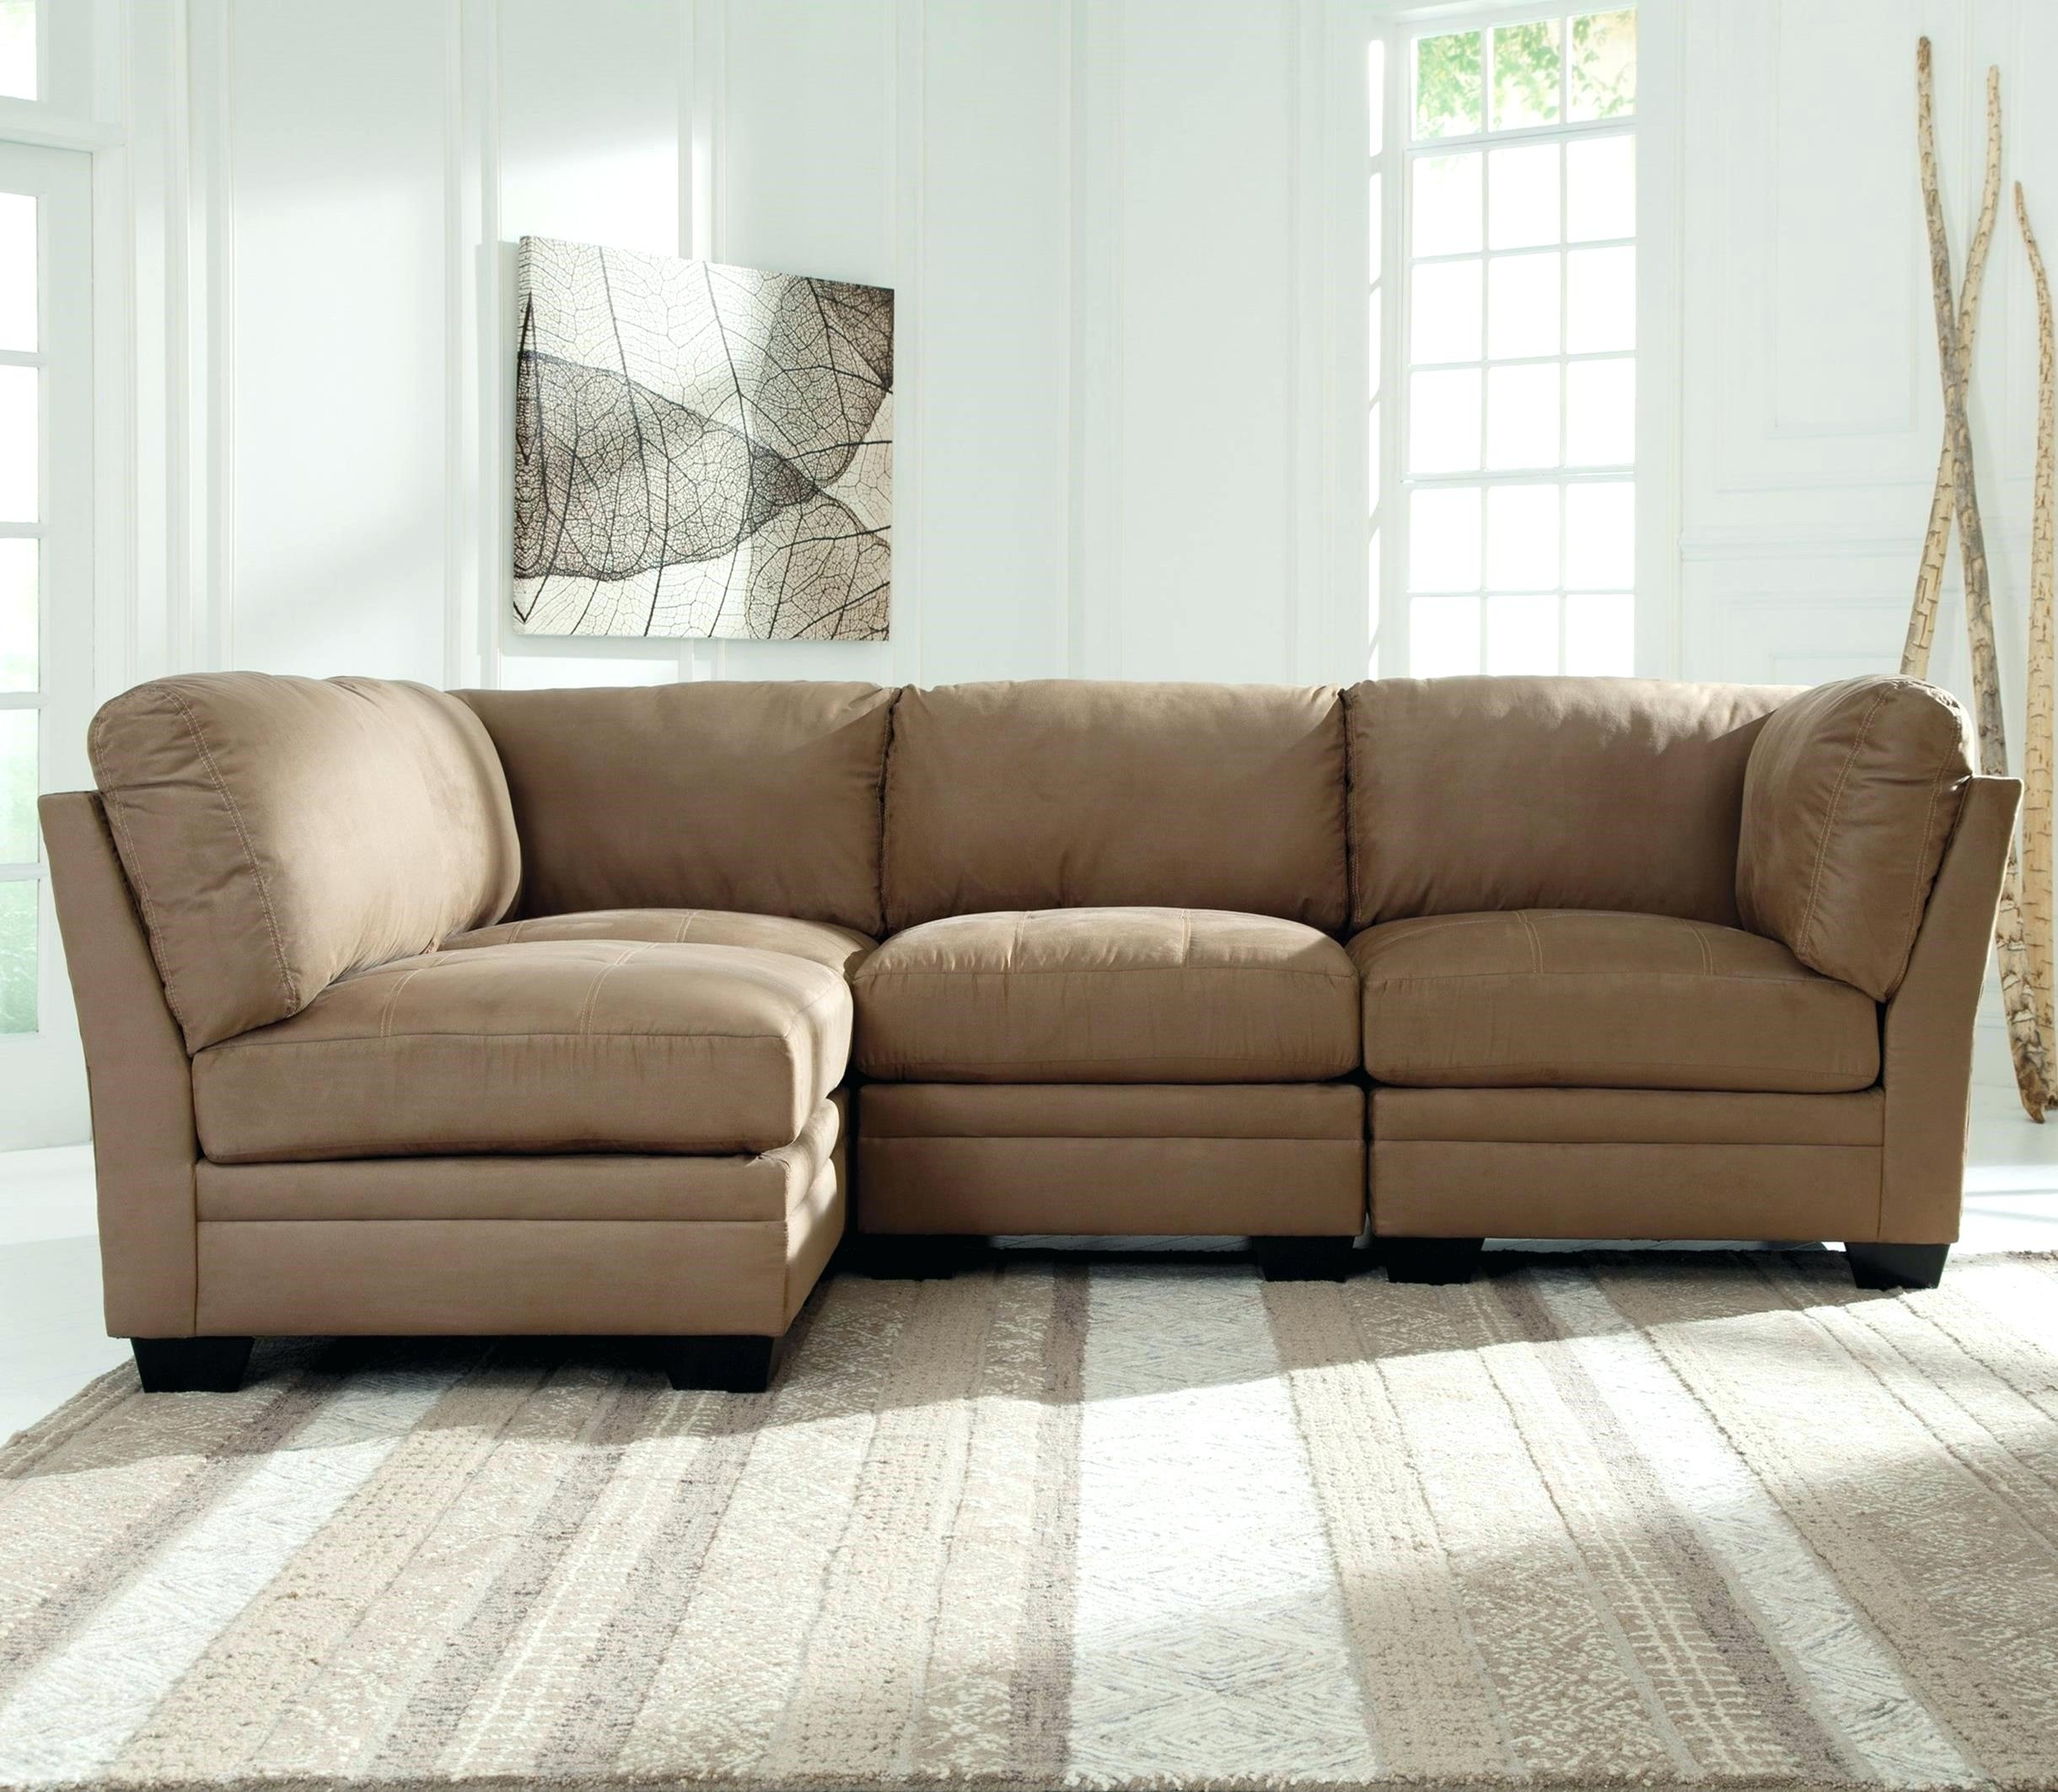 4 Piece Sectional Sofa Topic Related To Alder 4 Piece Sectional pertaining to Alder 4 Piece Sectionals (Image 3 of 30)